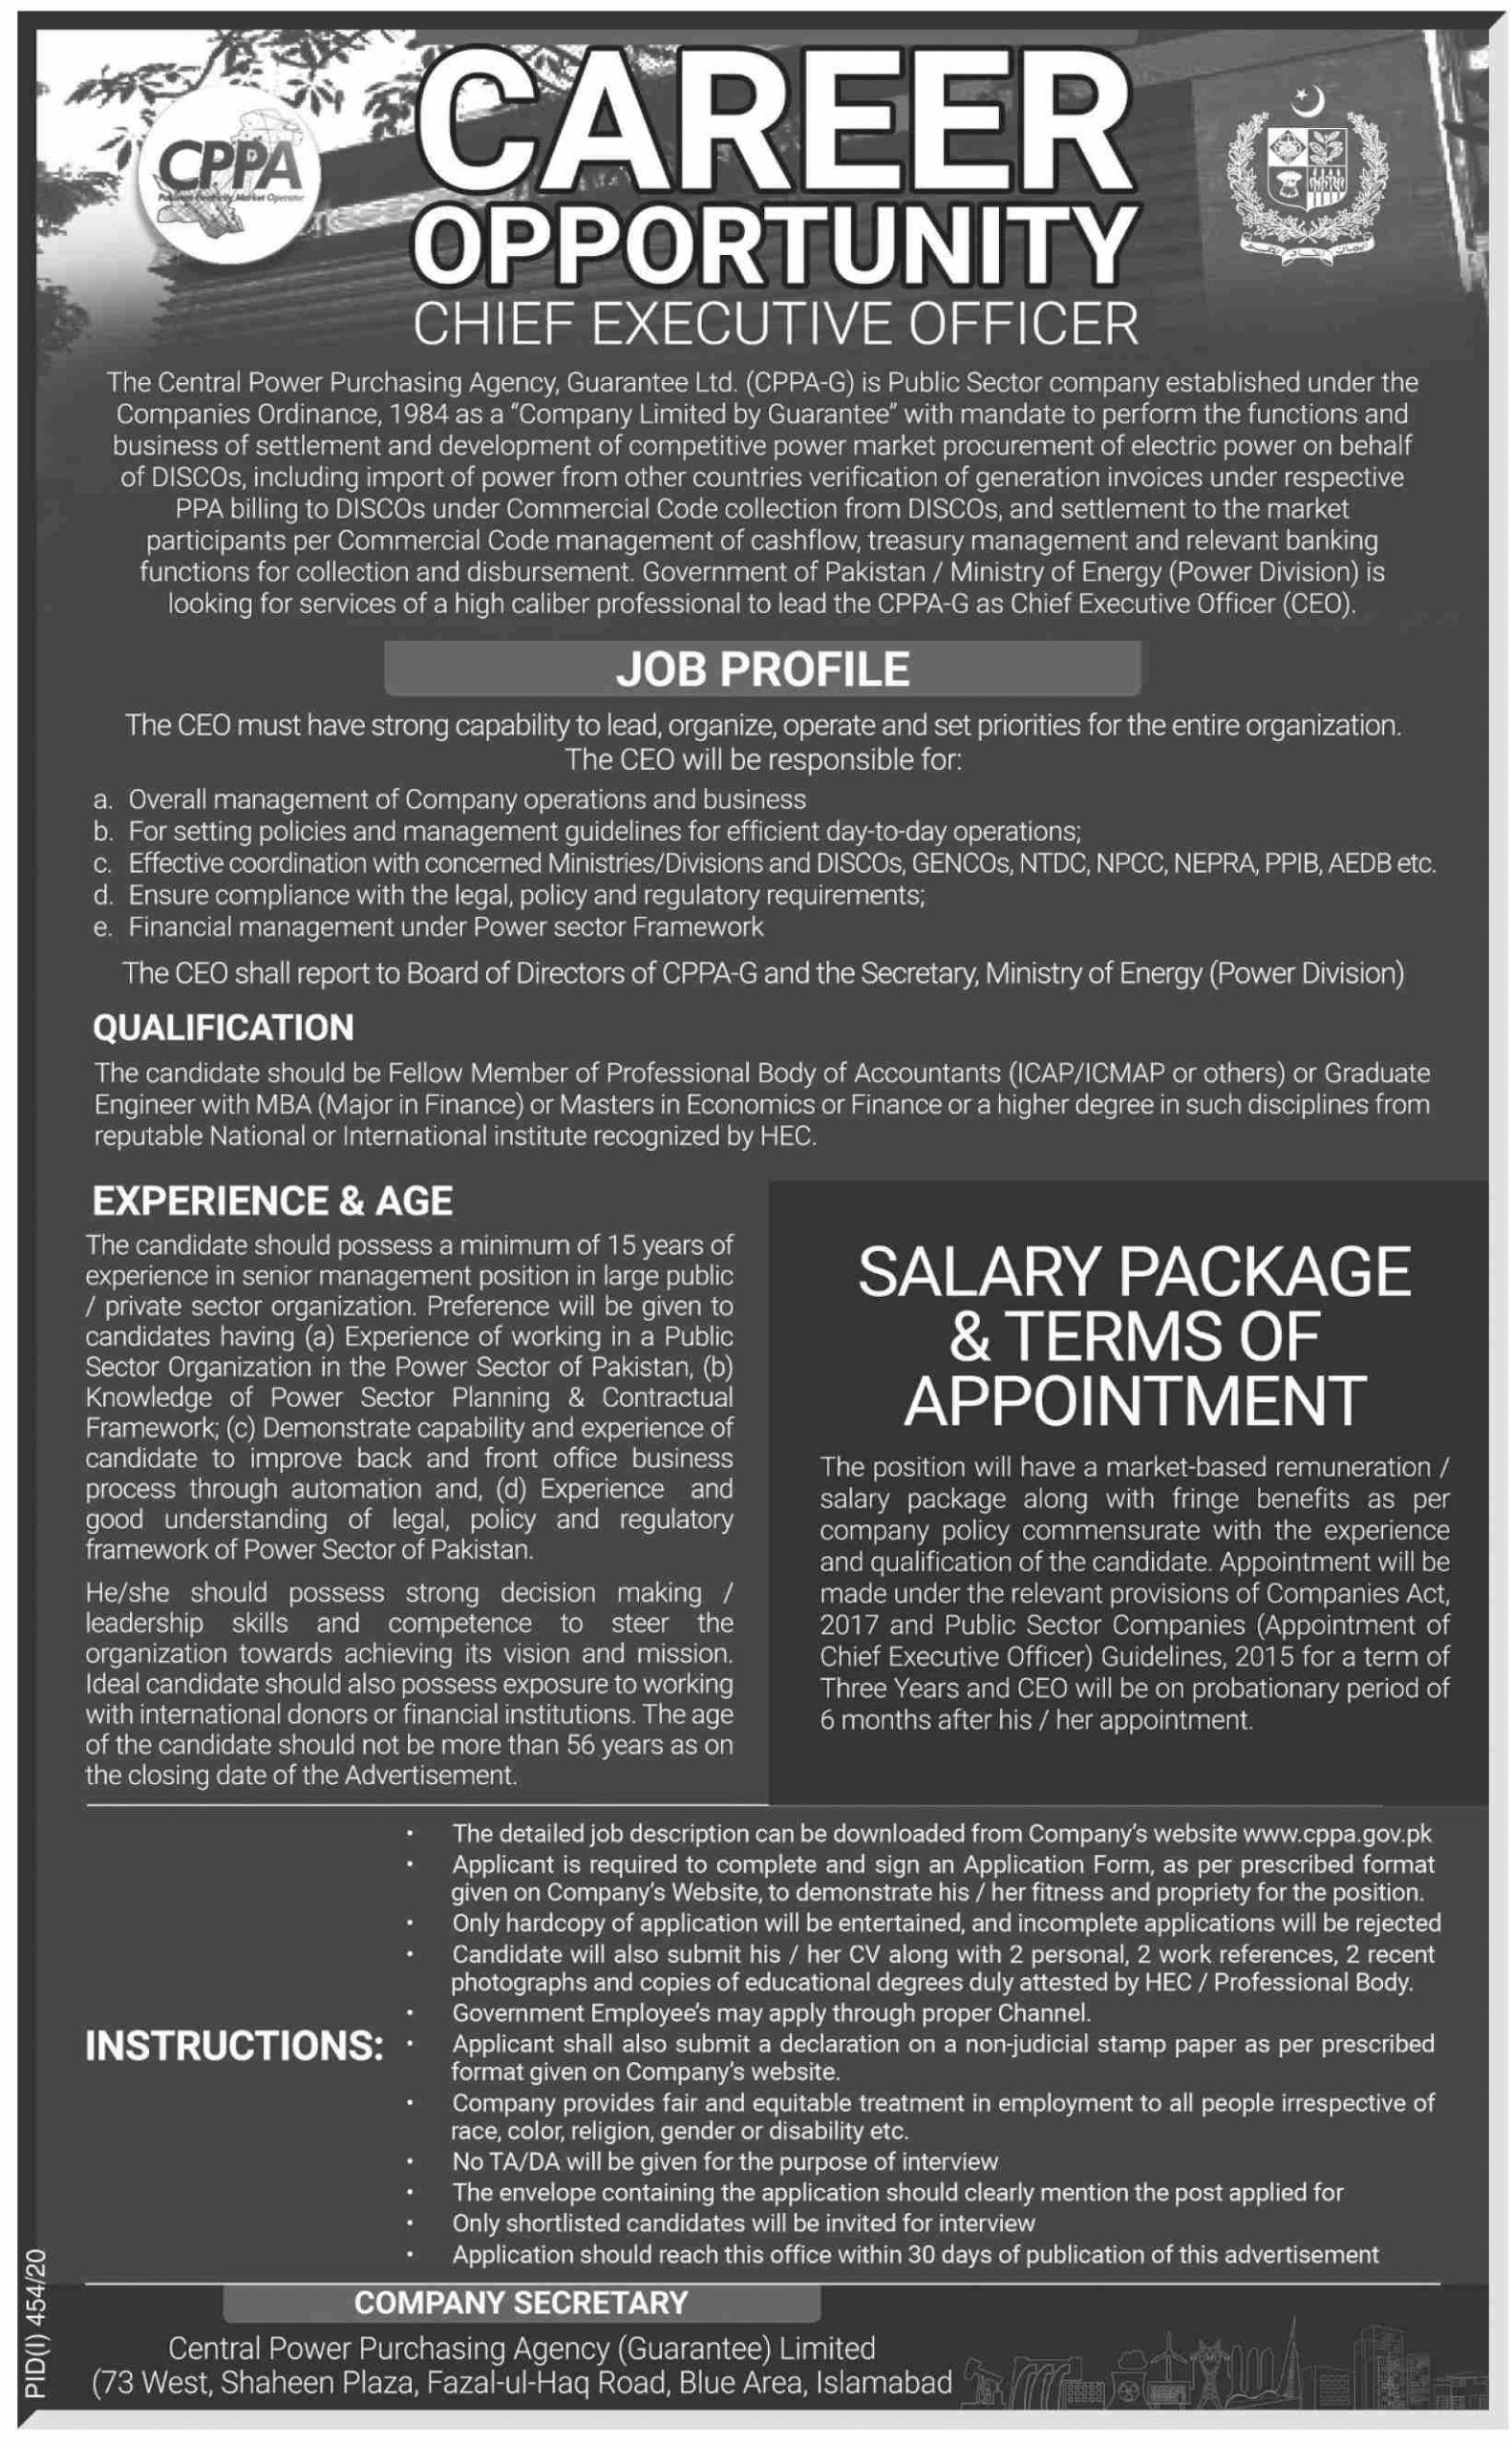 Chief Executive Officer Central Power Purchasing Agency (CPPA) Jobs July 26, 2020